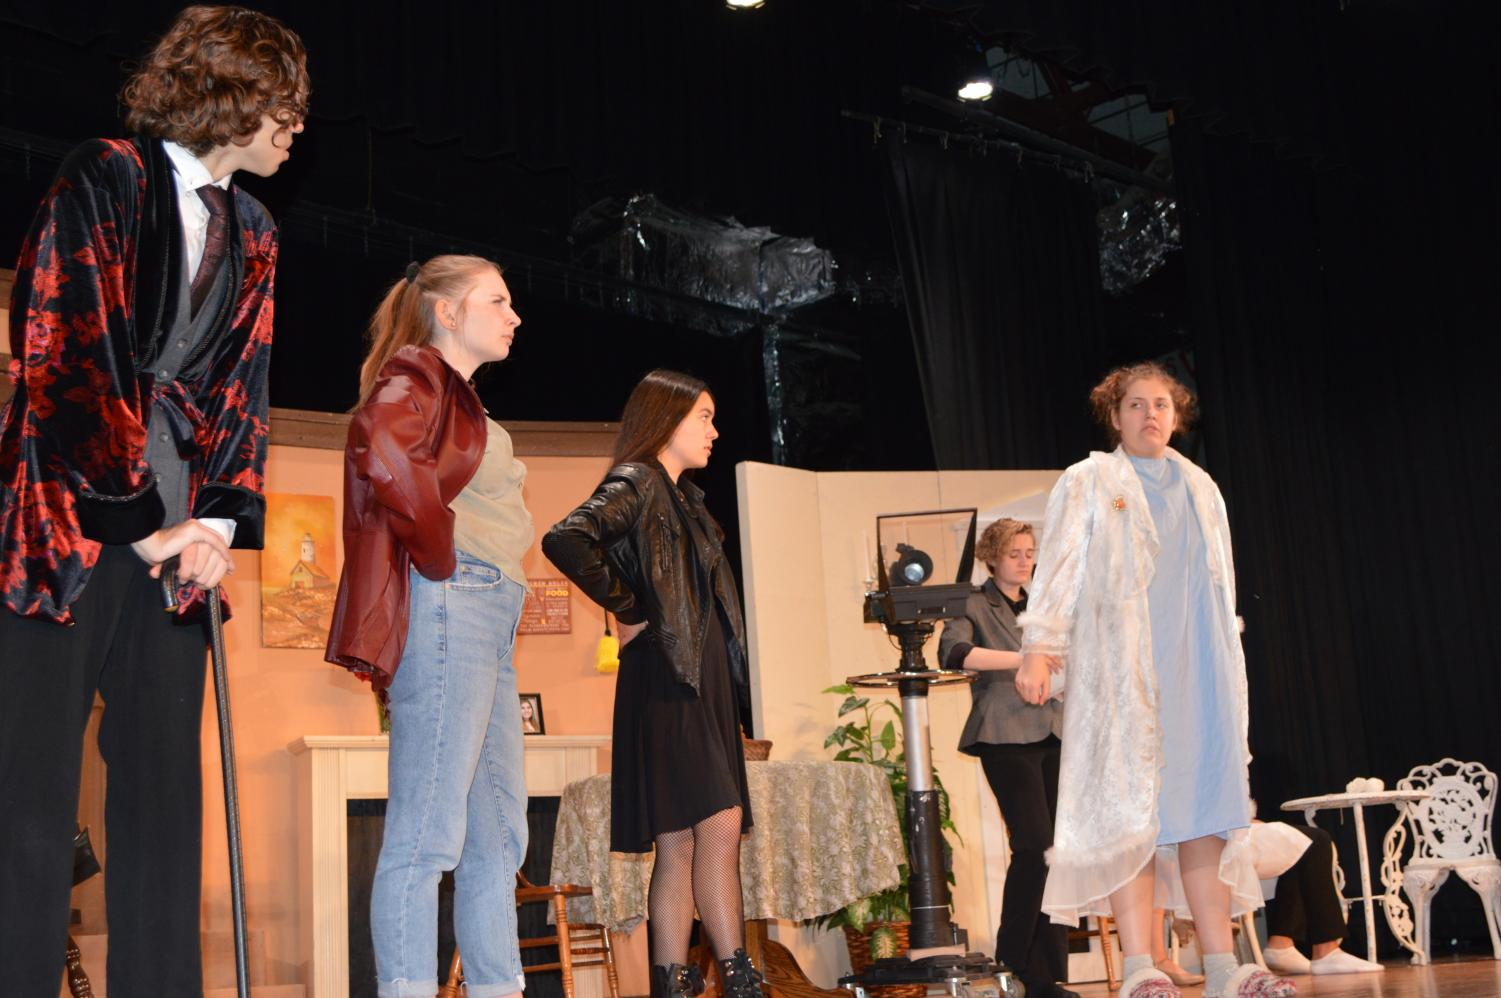 Actors (from left to right) Henry Goodnick, Emma Kaiven, Julianne Magistrado, Amy Twohig and Emily Gilligan rehearse for the Warren Hills Drama Club's upcoming show The Bold, The Young, and The Murdered. The murder mystery/comedy is set to be performed at 7 p.m. Thursday, Nov. 14, through Saturday, Nov. 16. Tickets will be available upon arrival for $8 for students and $14 for adults. (Photo courtesy of Jennifer Reid)